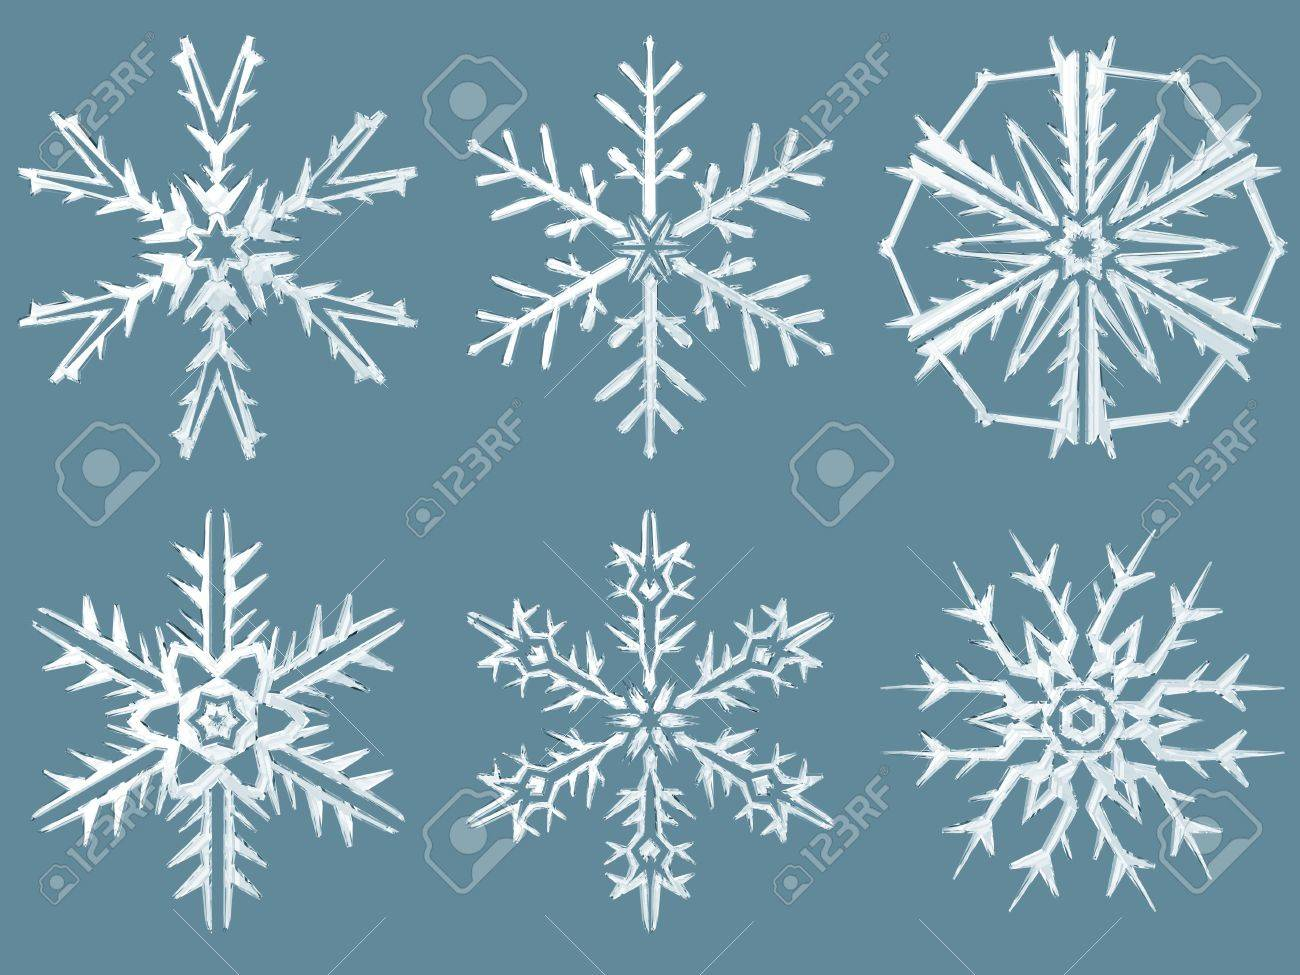 3d rendering of snowflakes all flakes have a crystal material